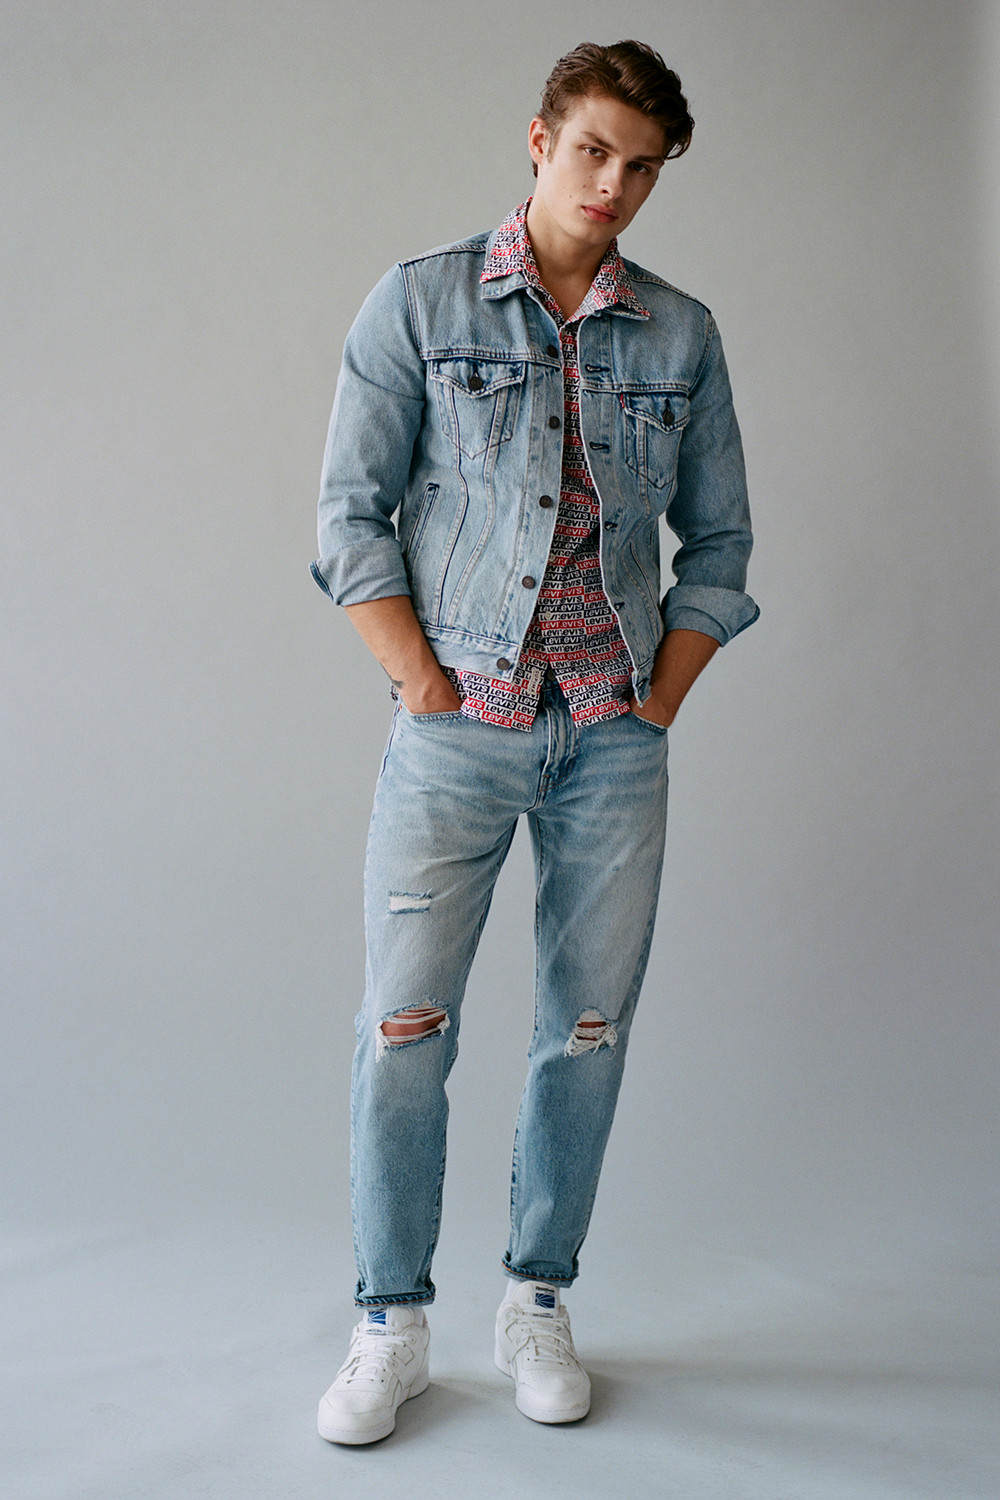 Latest levi collection pictures